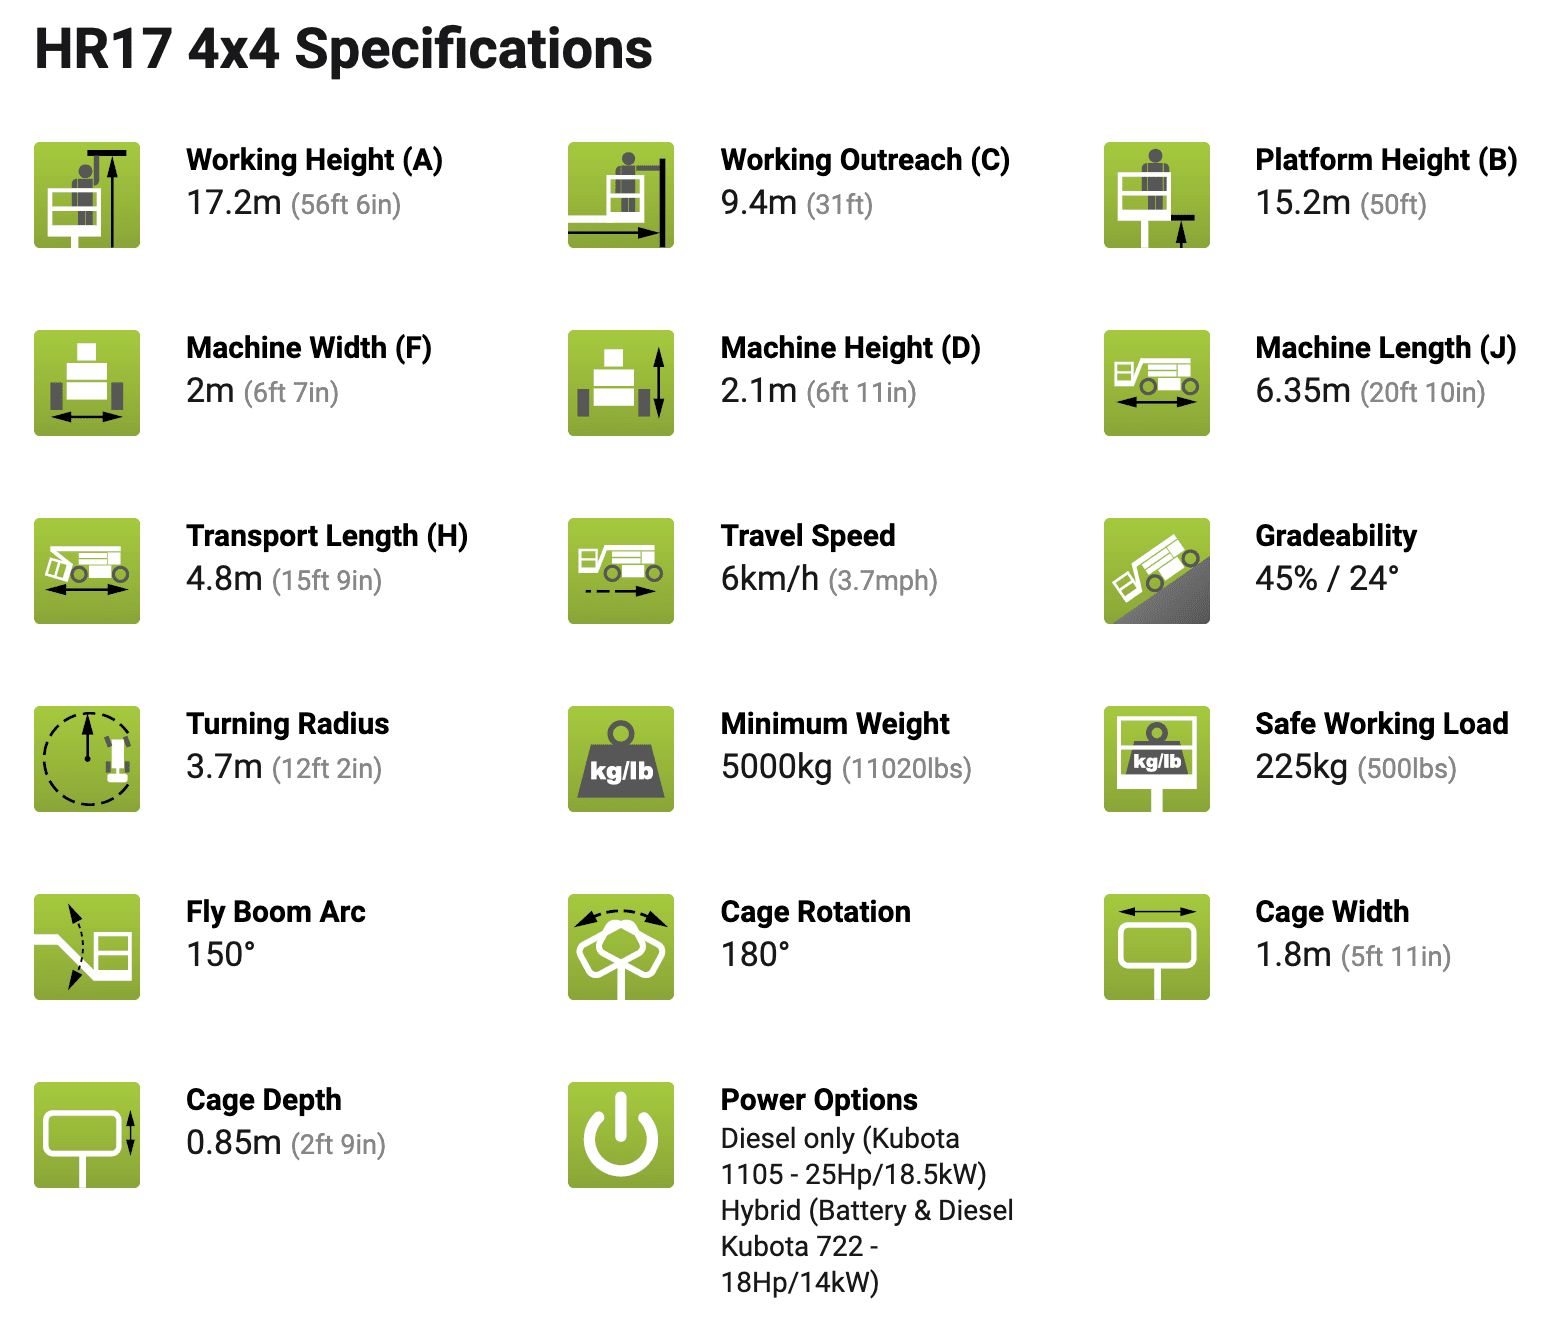 specifications HR17